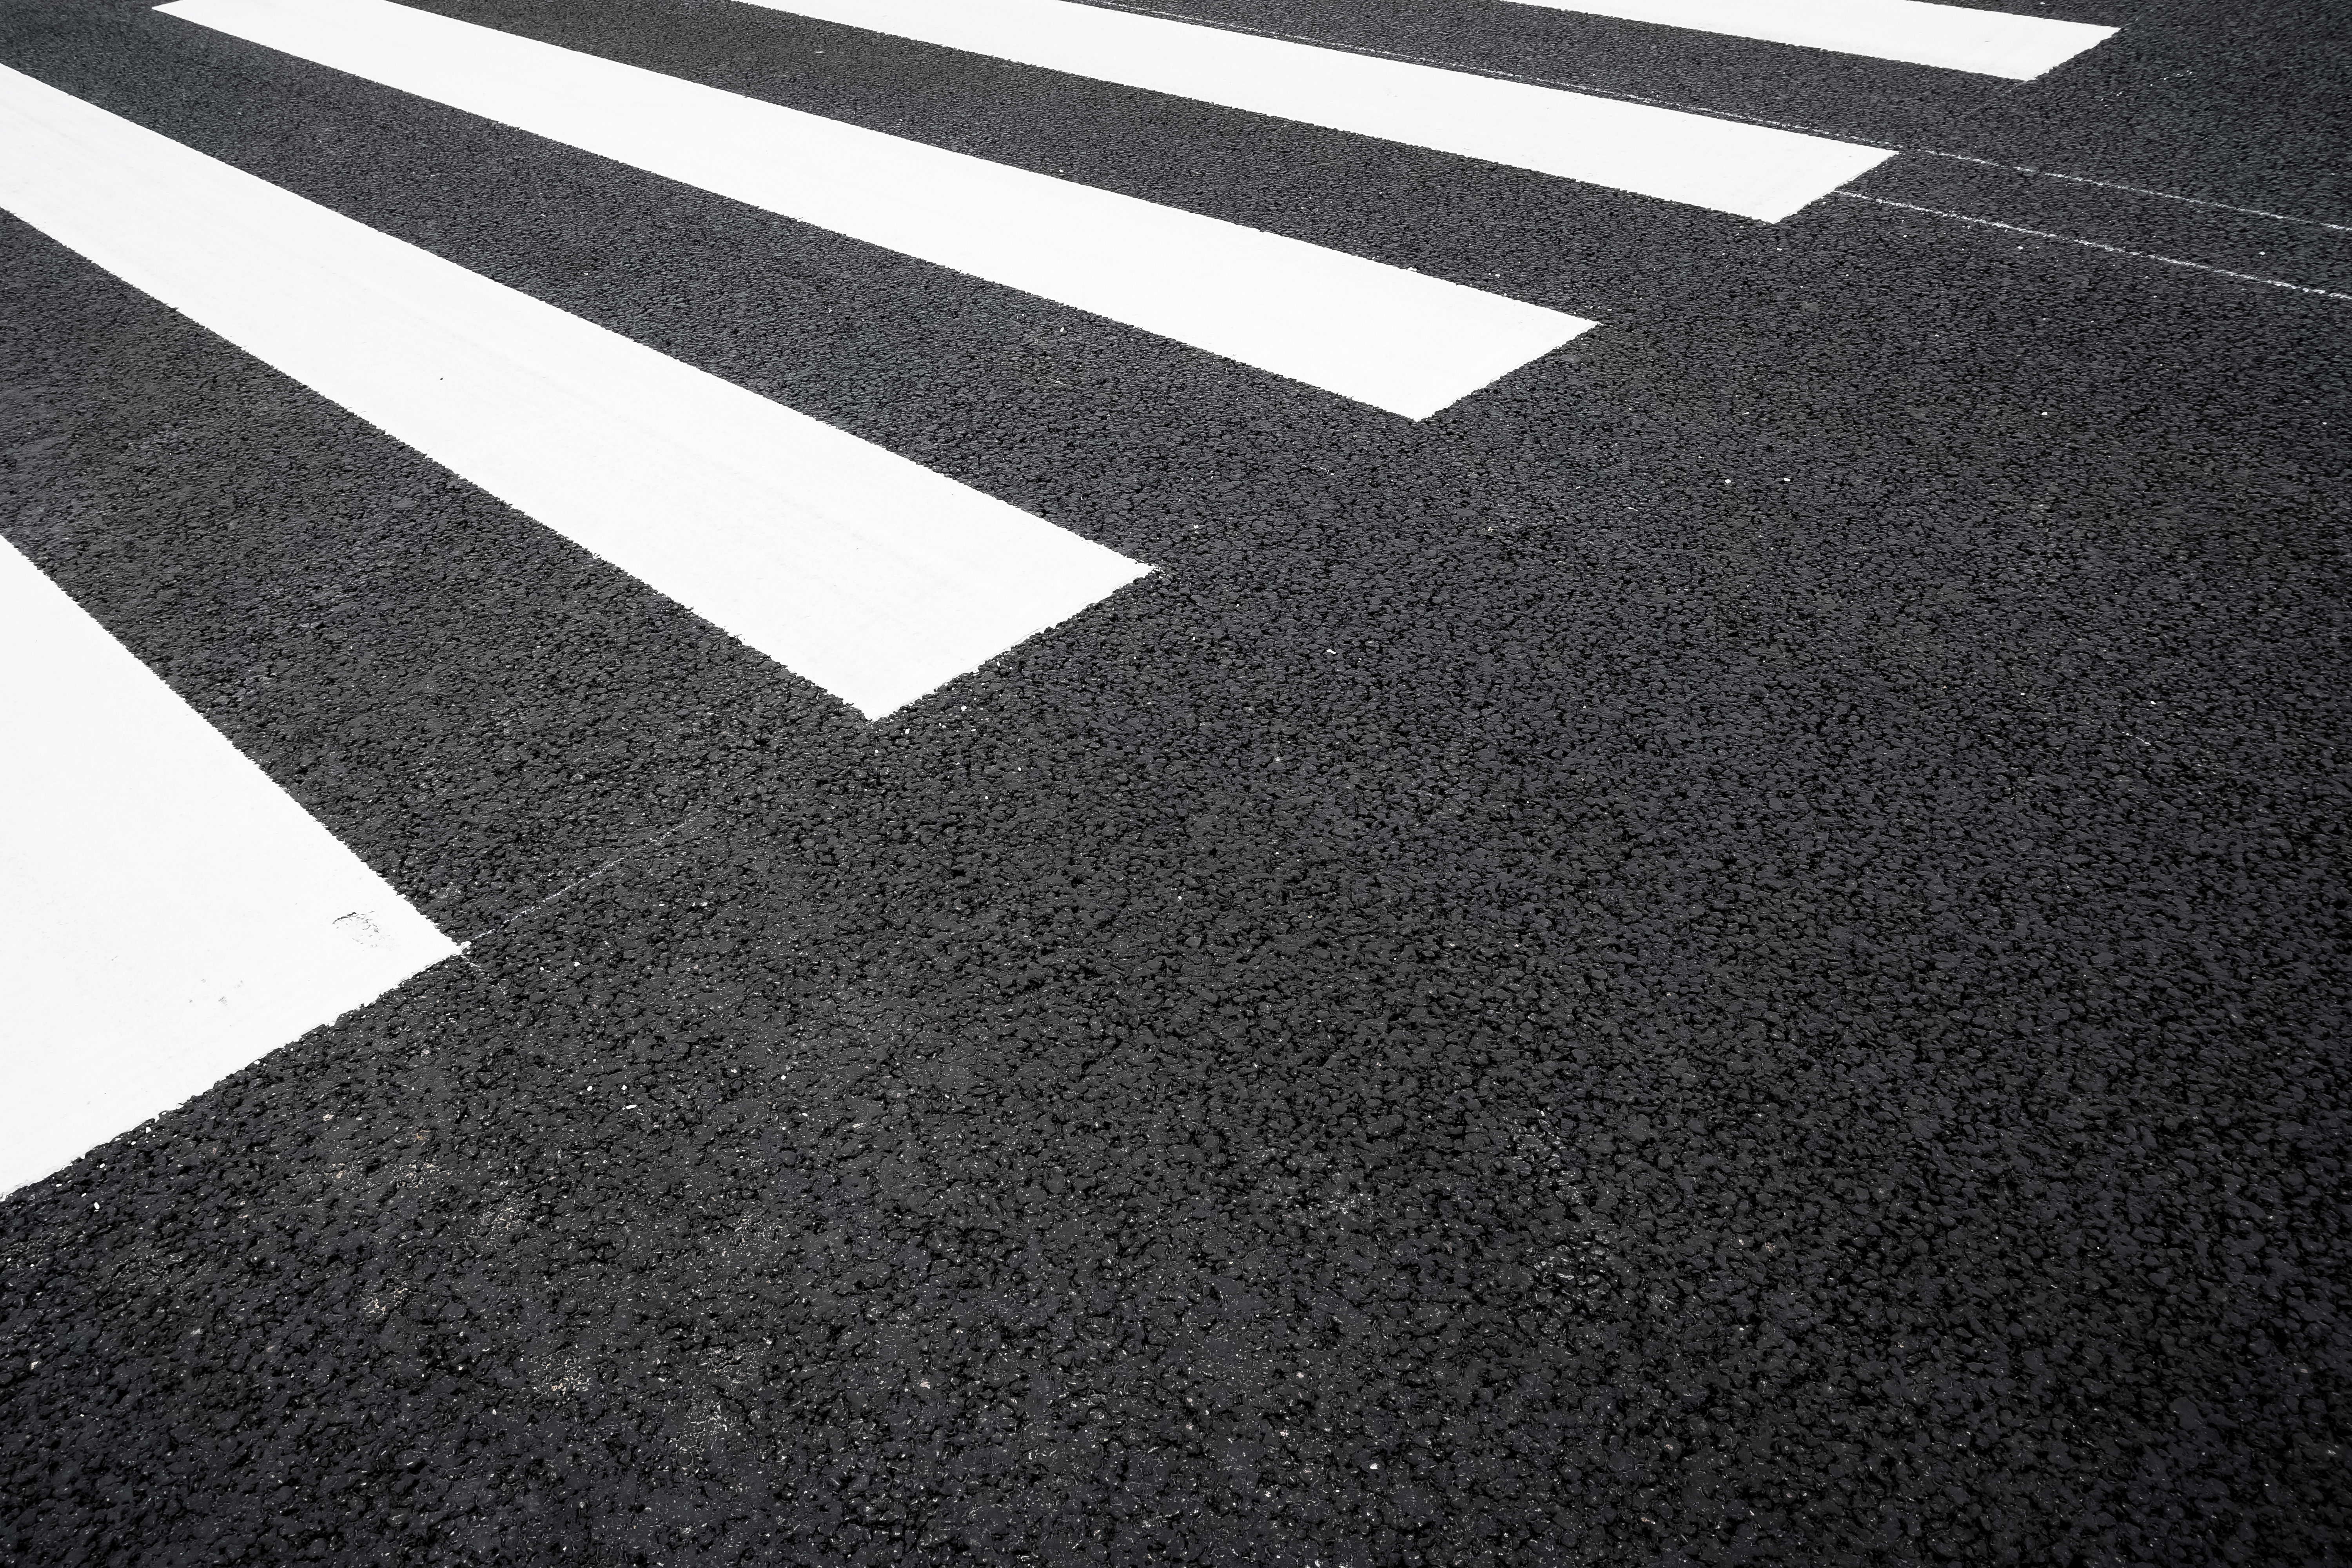 A high-visibility crosswalk in the middle of a black-asphalt road.